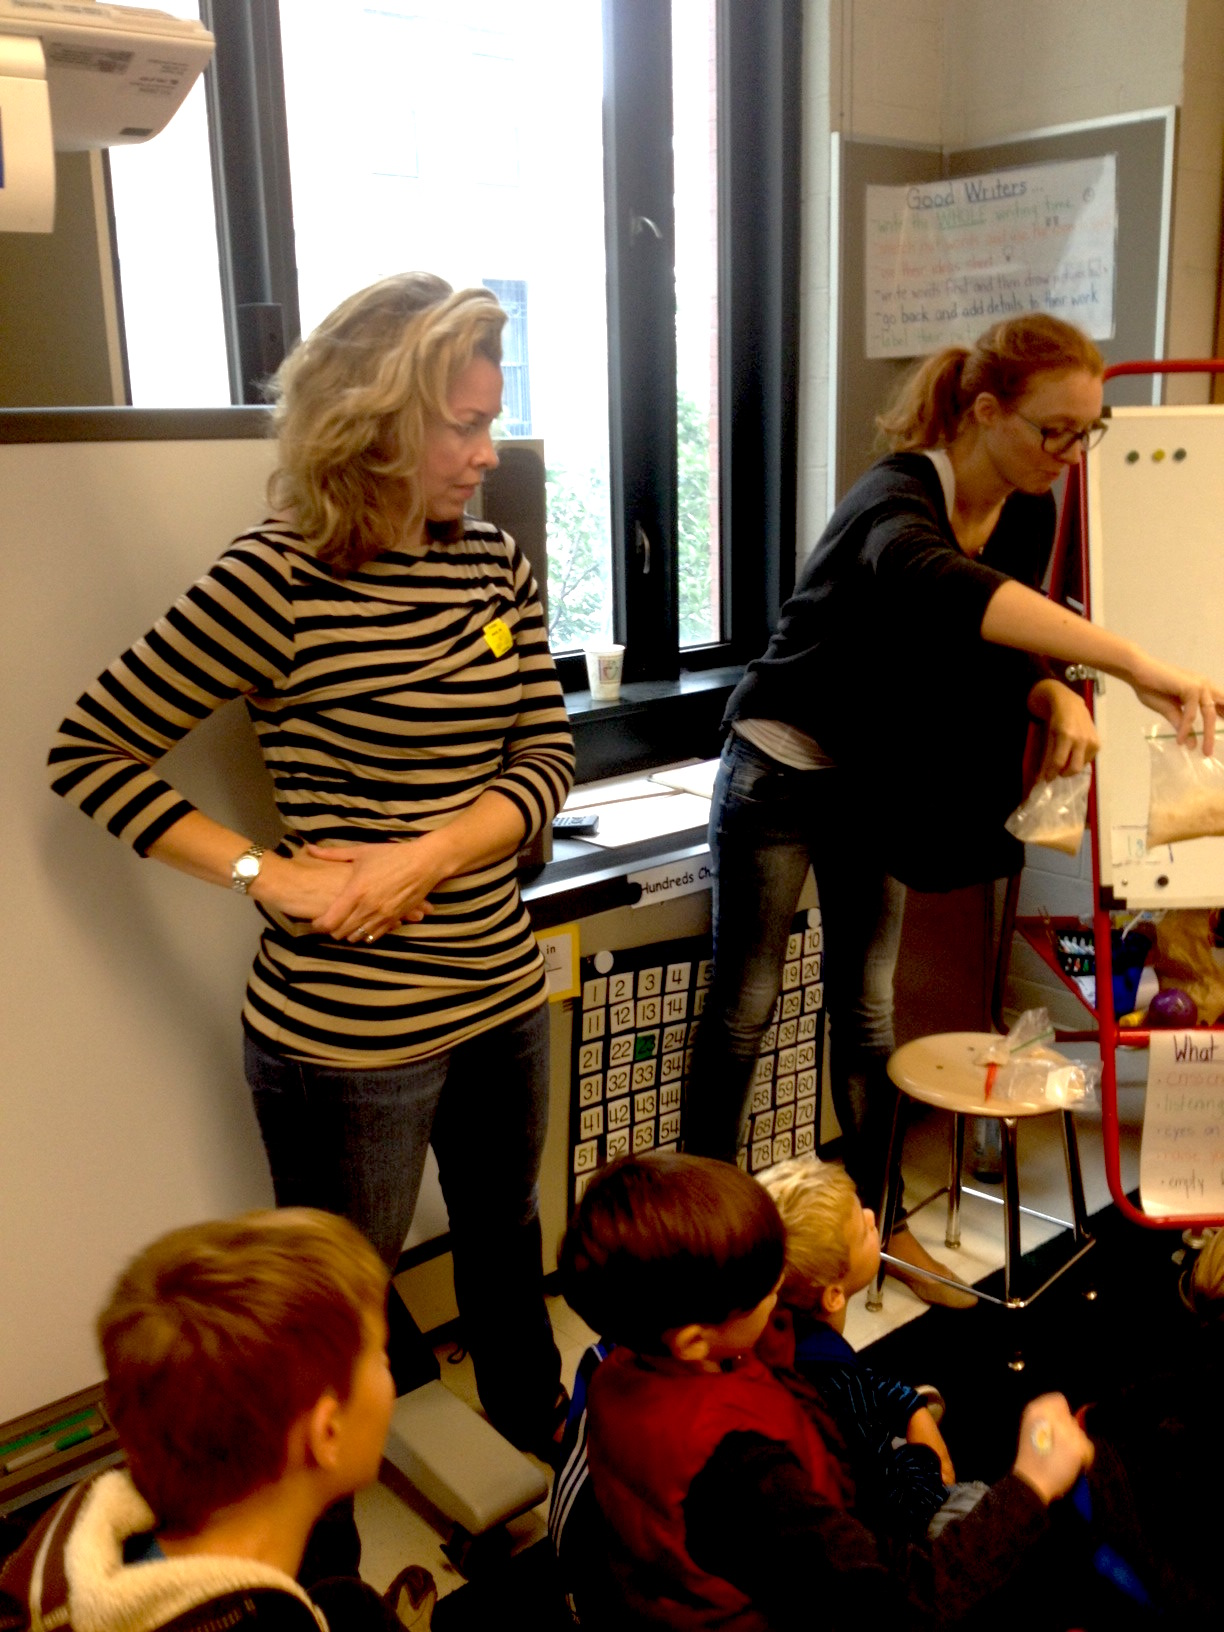 Hands-on Science Demonstrations - Designing and conducting experiments for NYC elementary school students with fellow parent & biologist:Sunniva Stordahl Bjorklund(now in her second career).